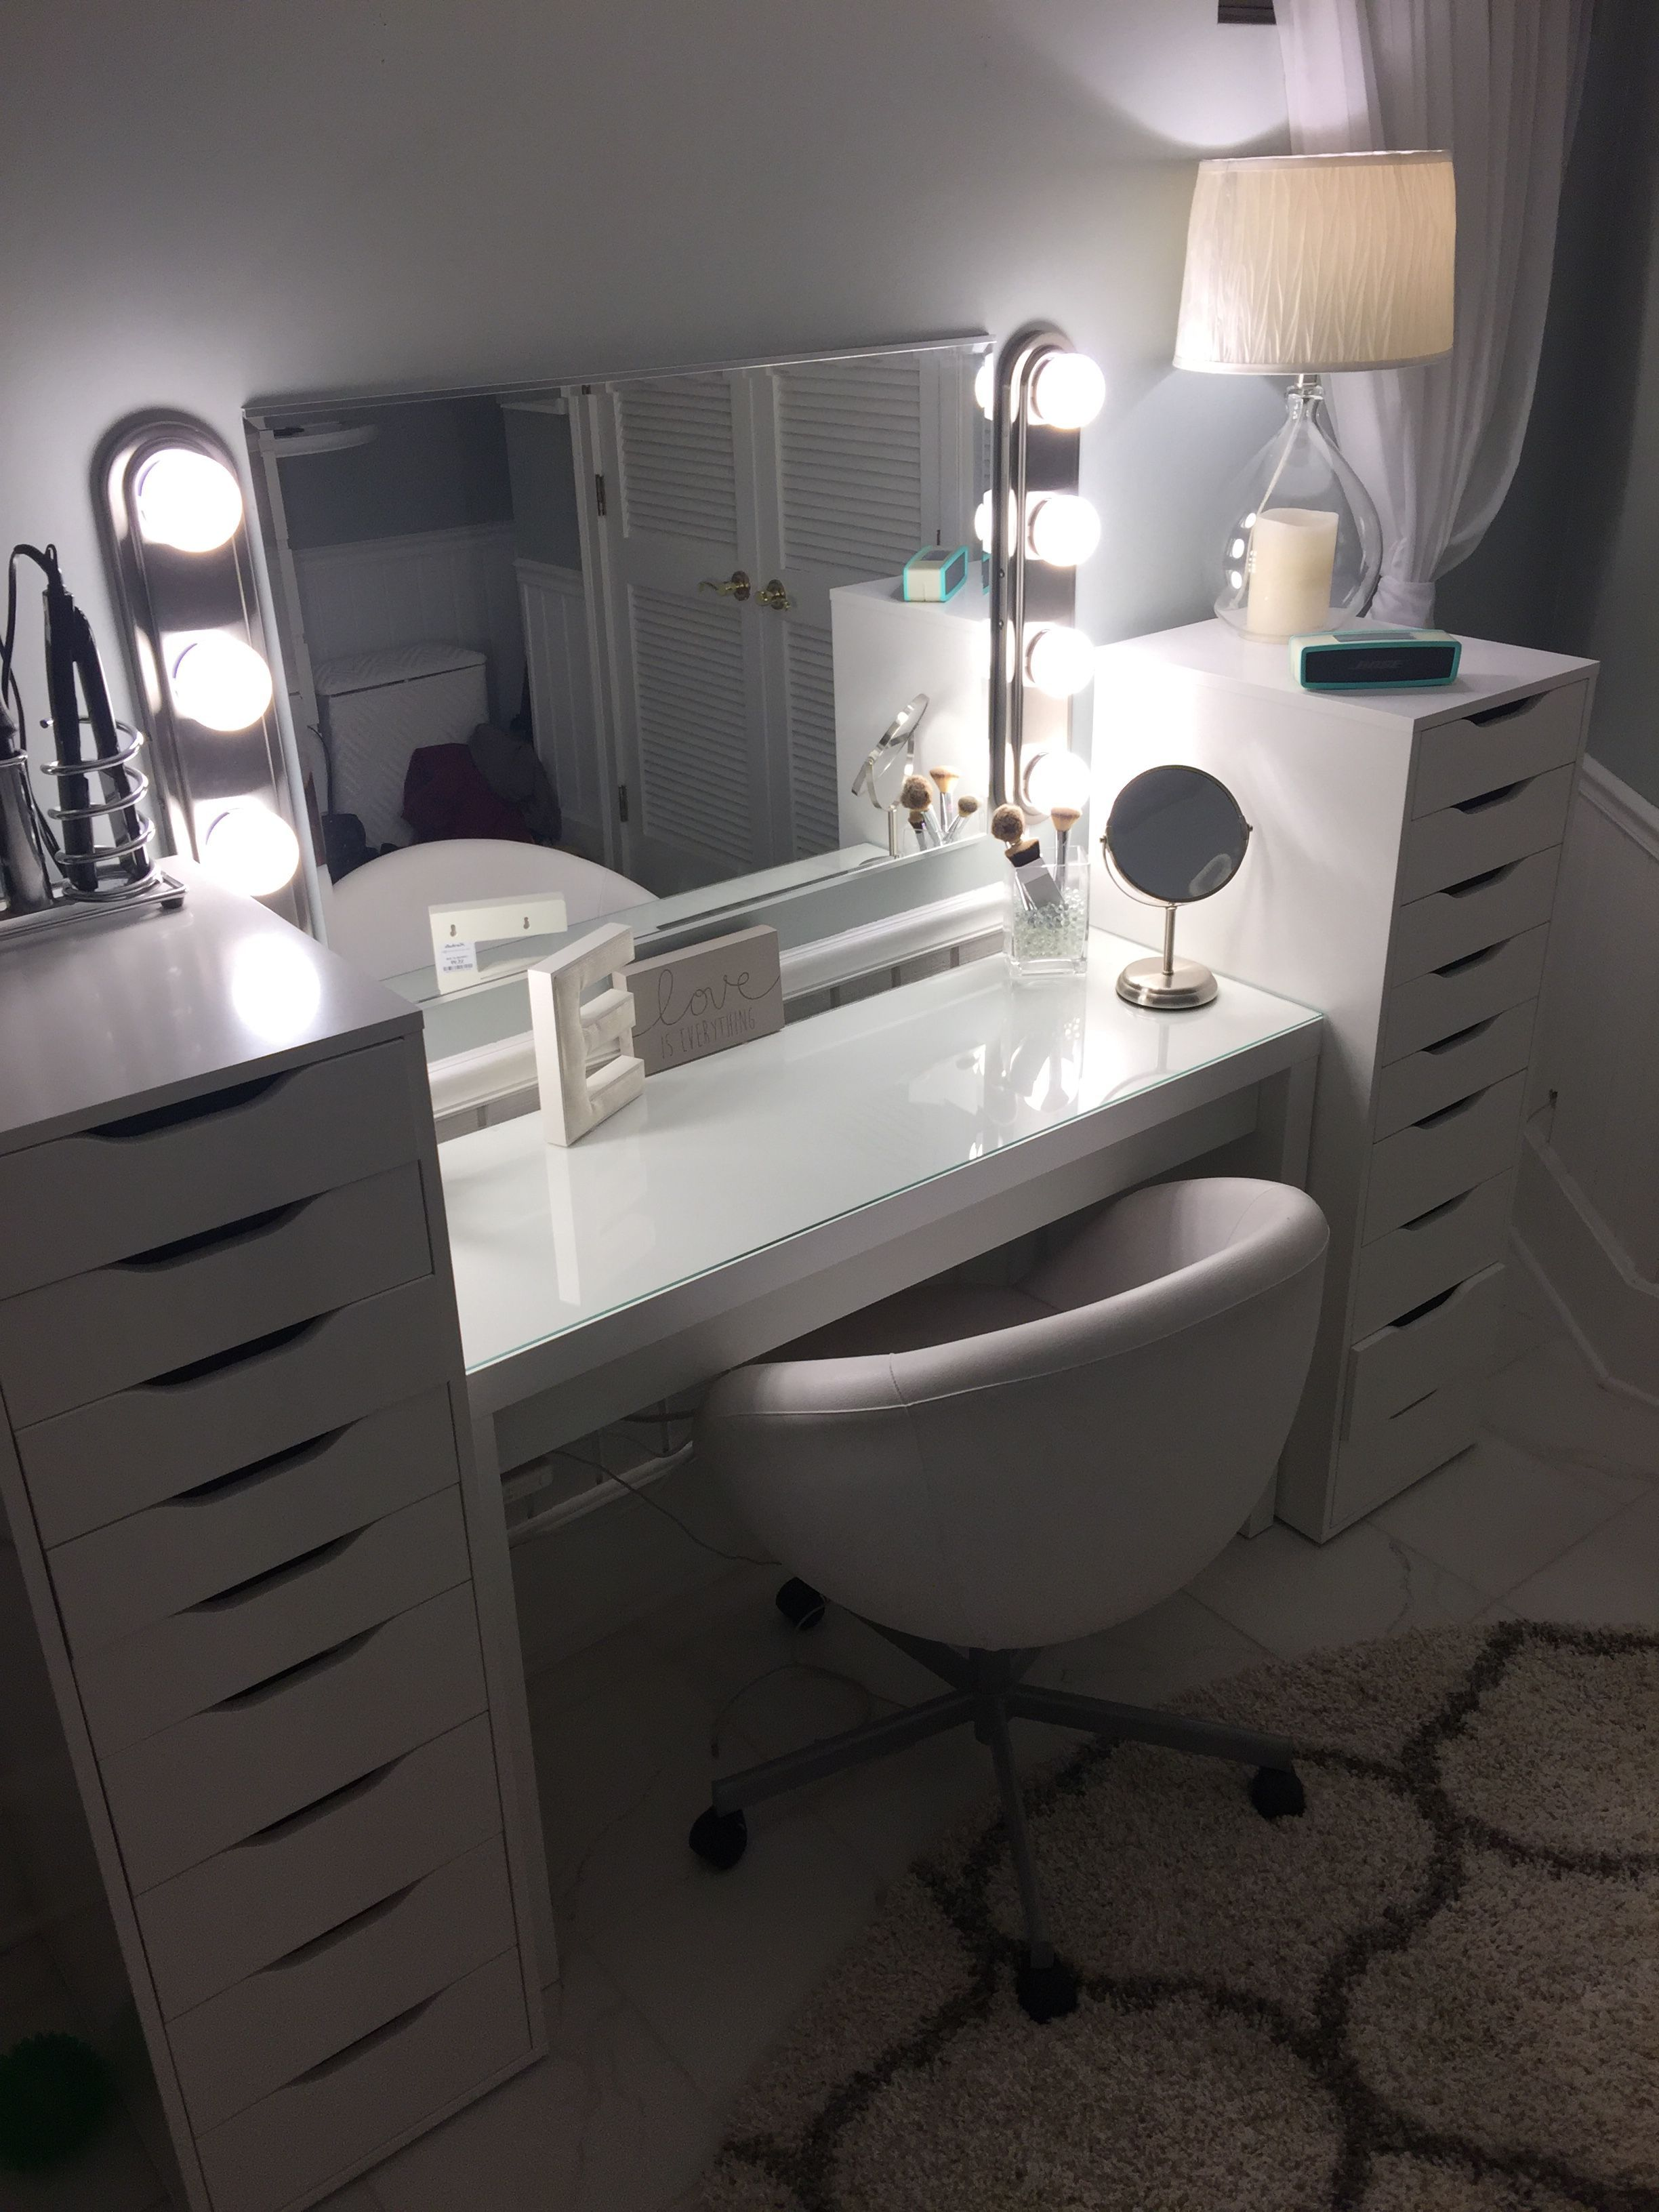 Newest Pics Ikea Makeup Lighted Makeup Diy Home Depot Tips Investing In A Well Designed Sofa Is Just Vanity Makeup Rooms Makeup Room Decor Beauty Room